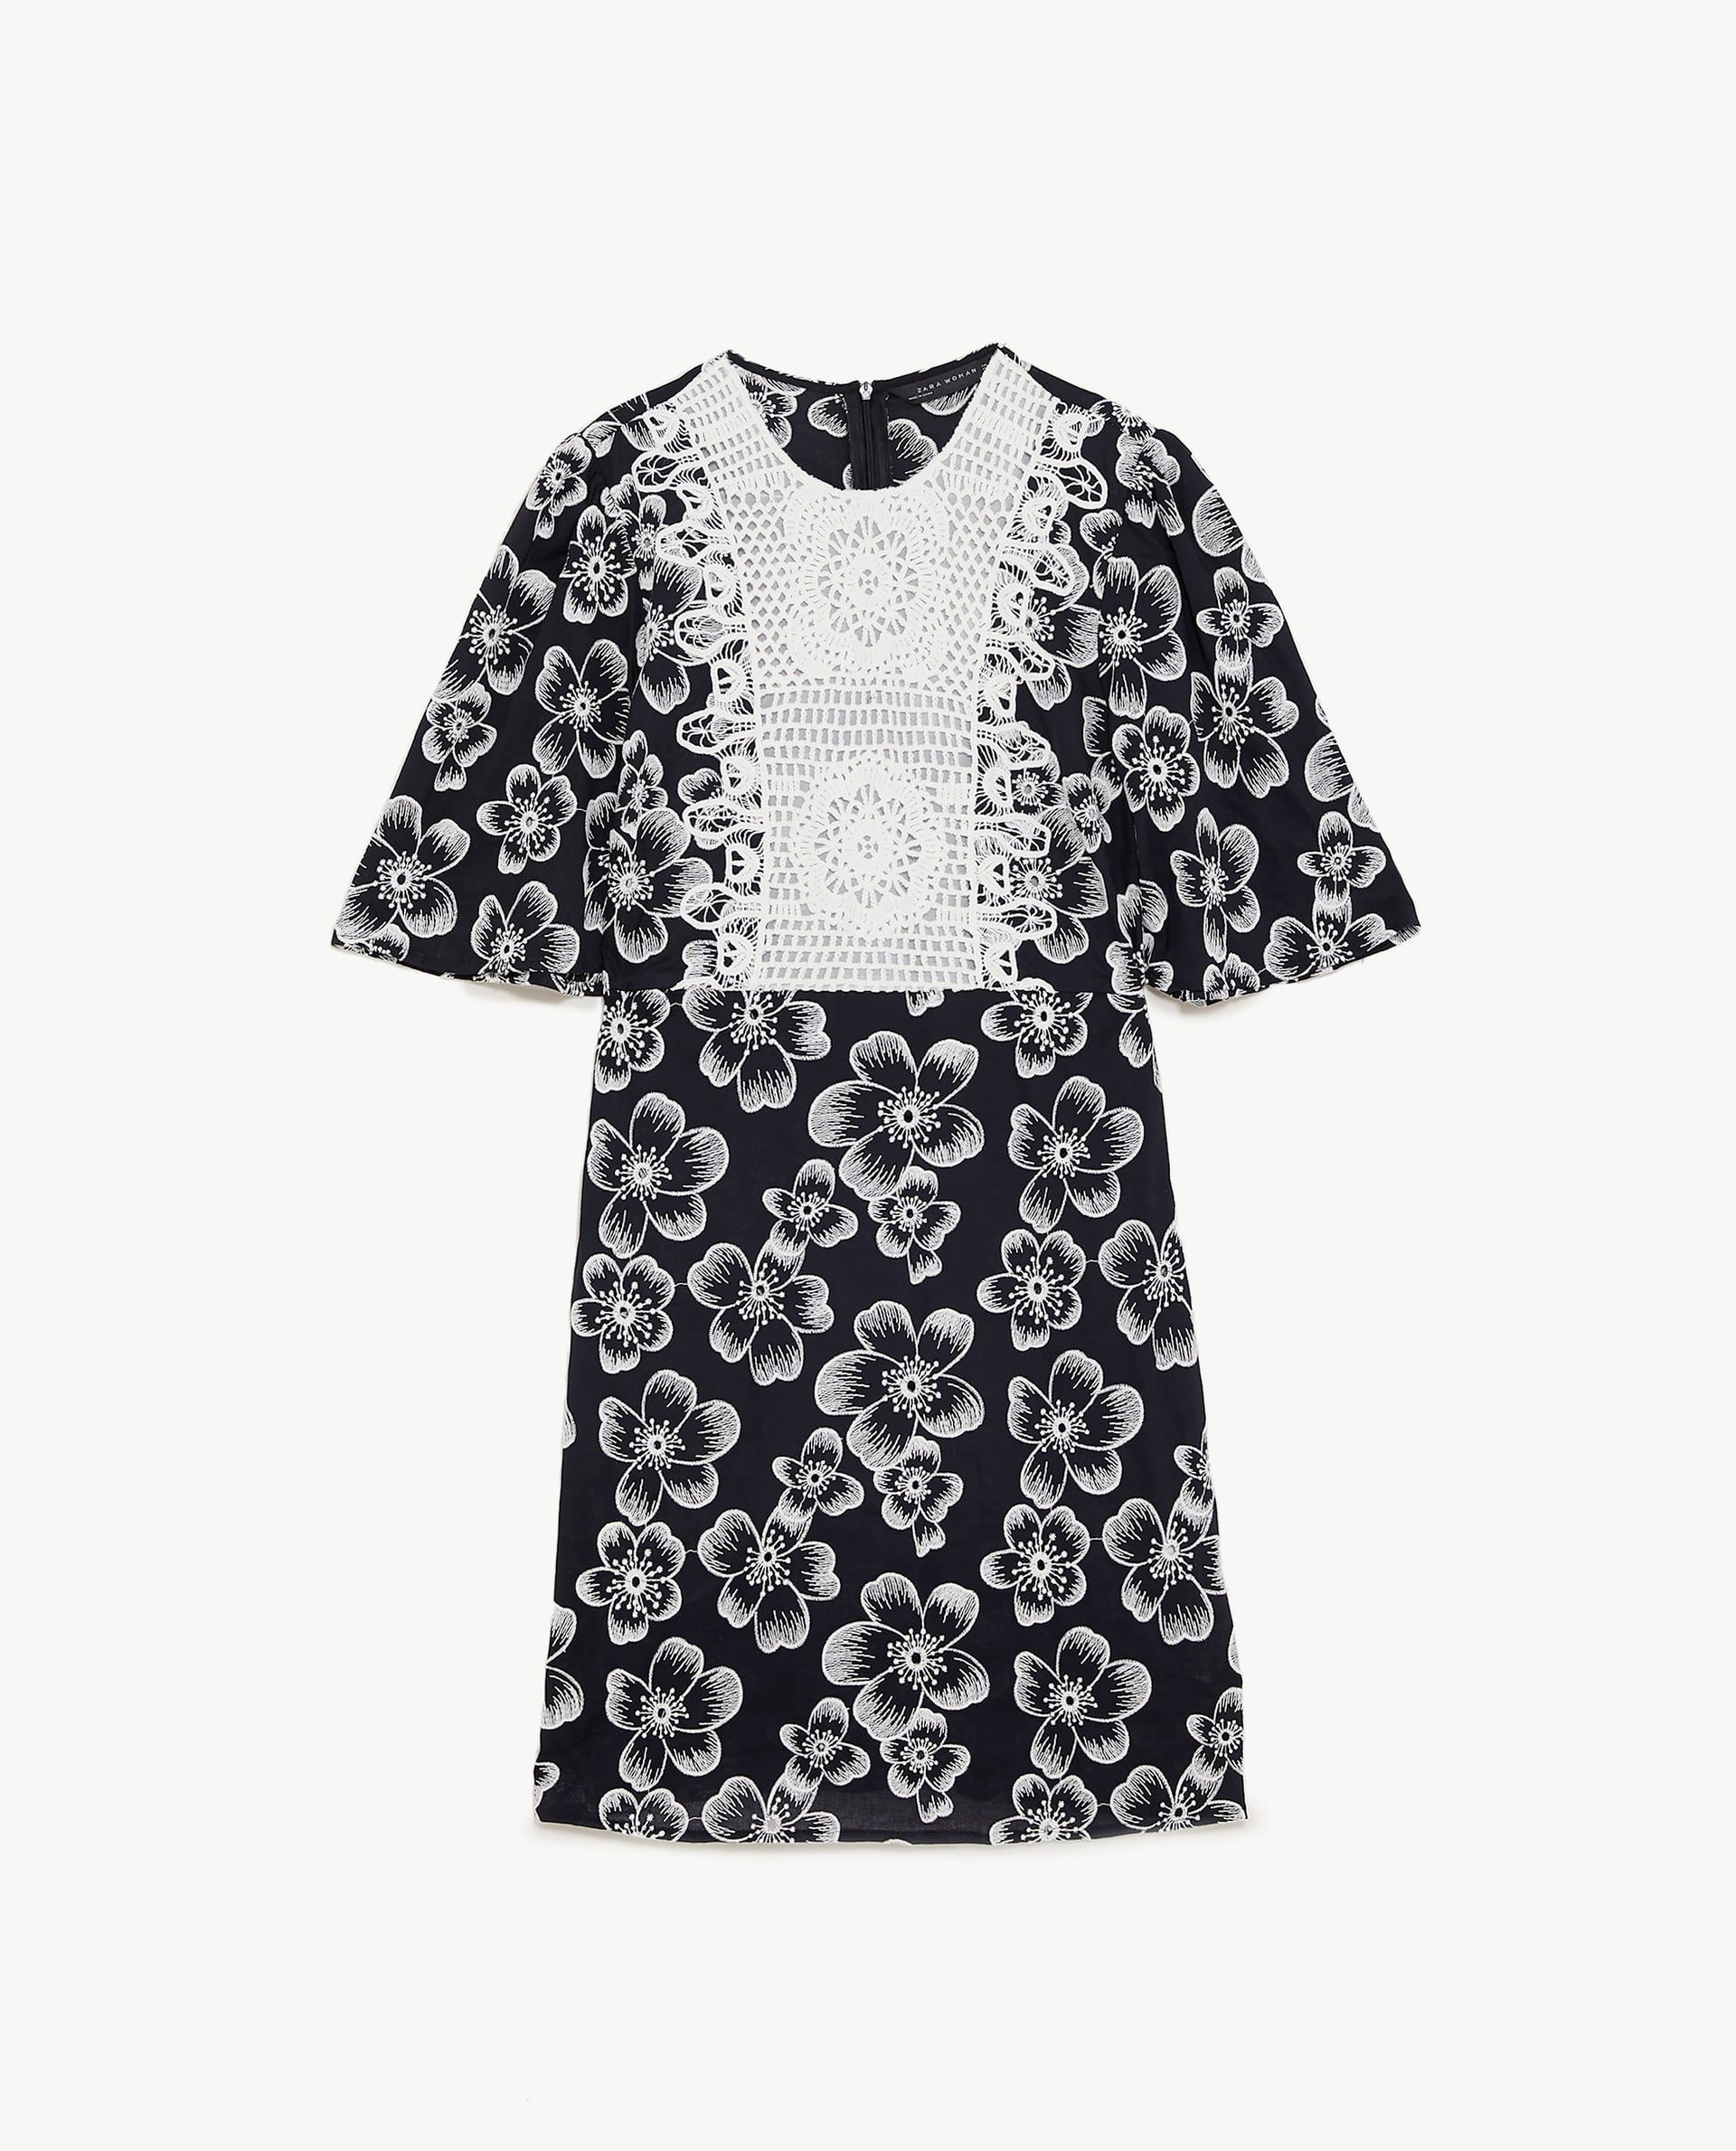 826a6c19 COMBINED BIB FRONT DRESS Zara, New Look Fashion, Spring Summer, Closet,  Floral